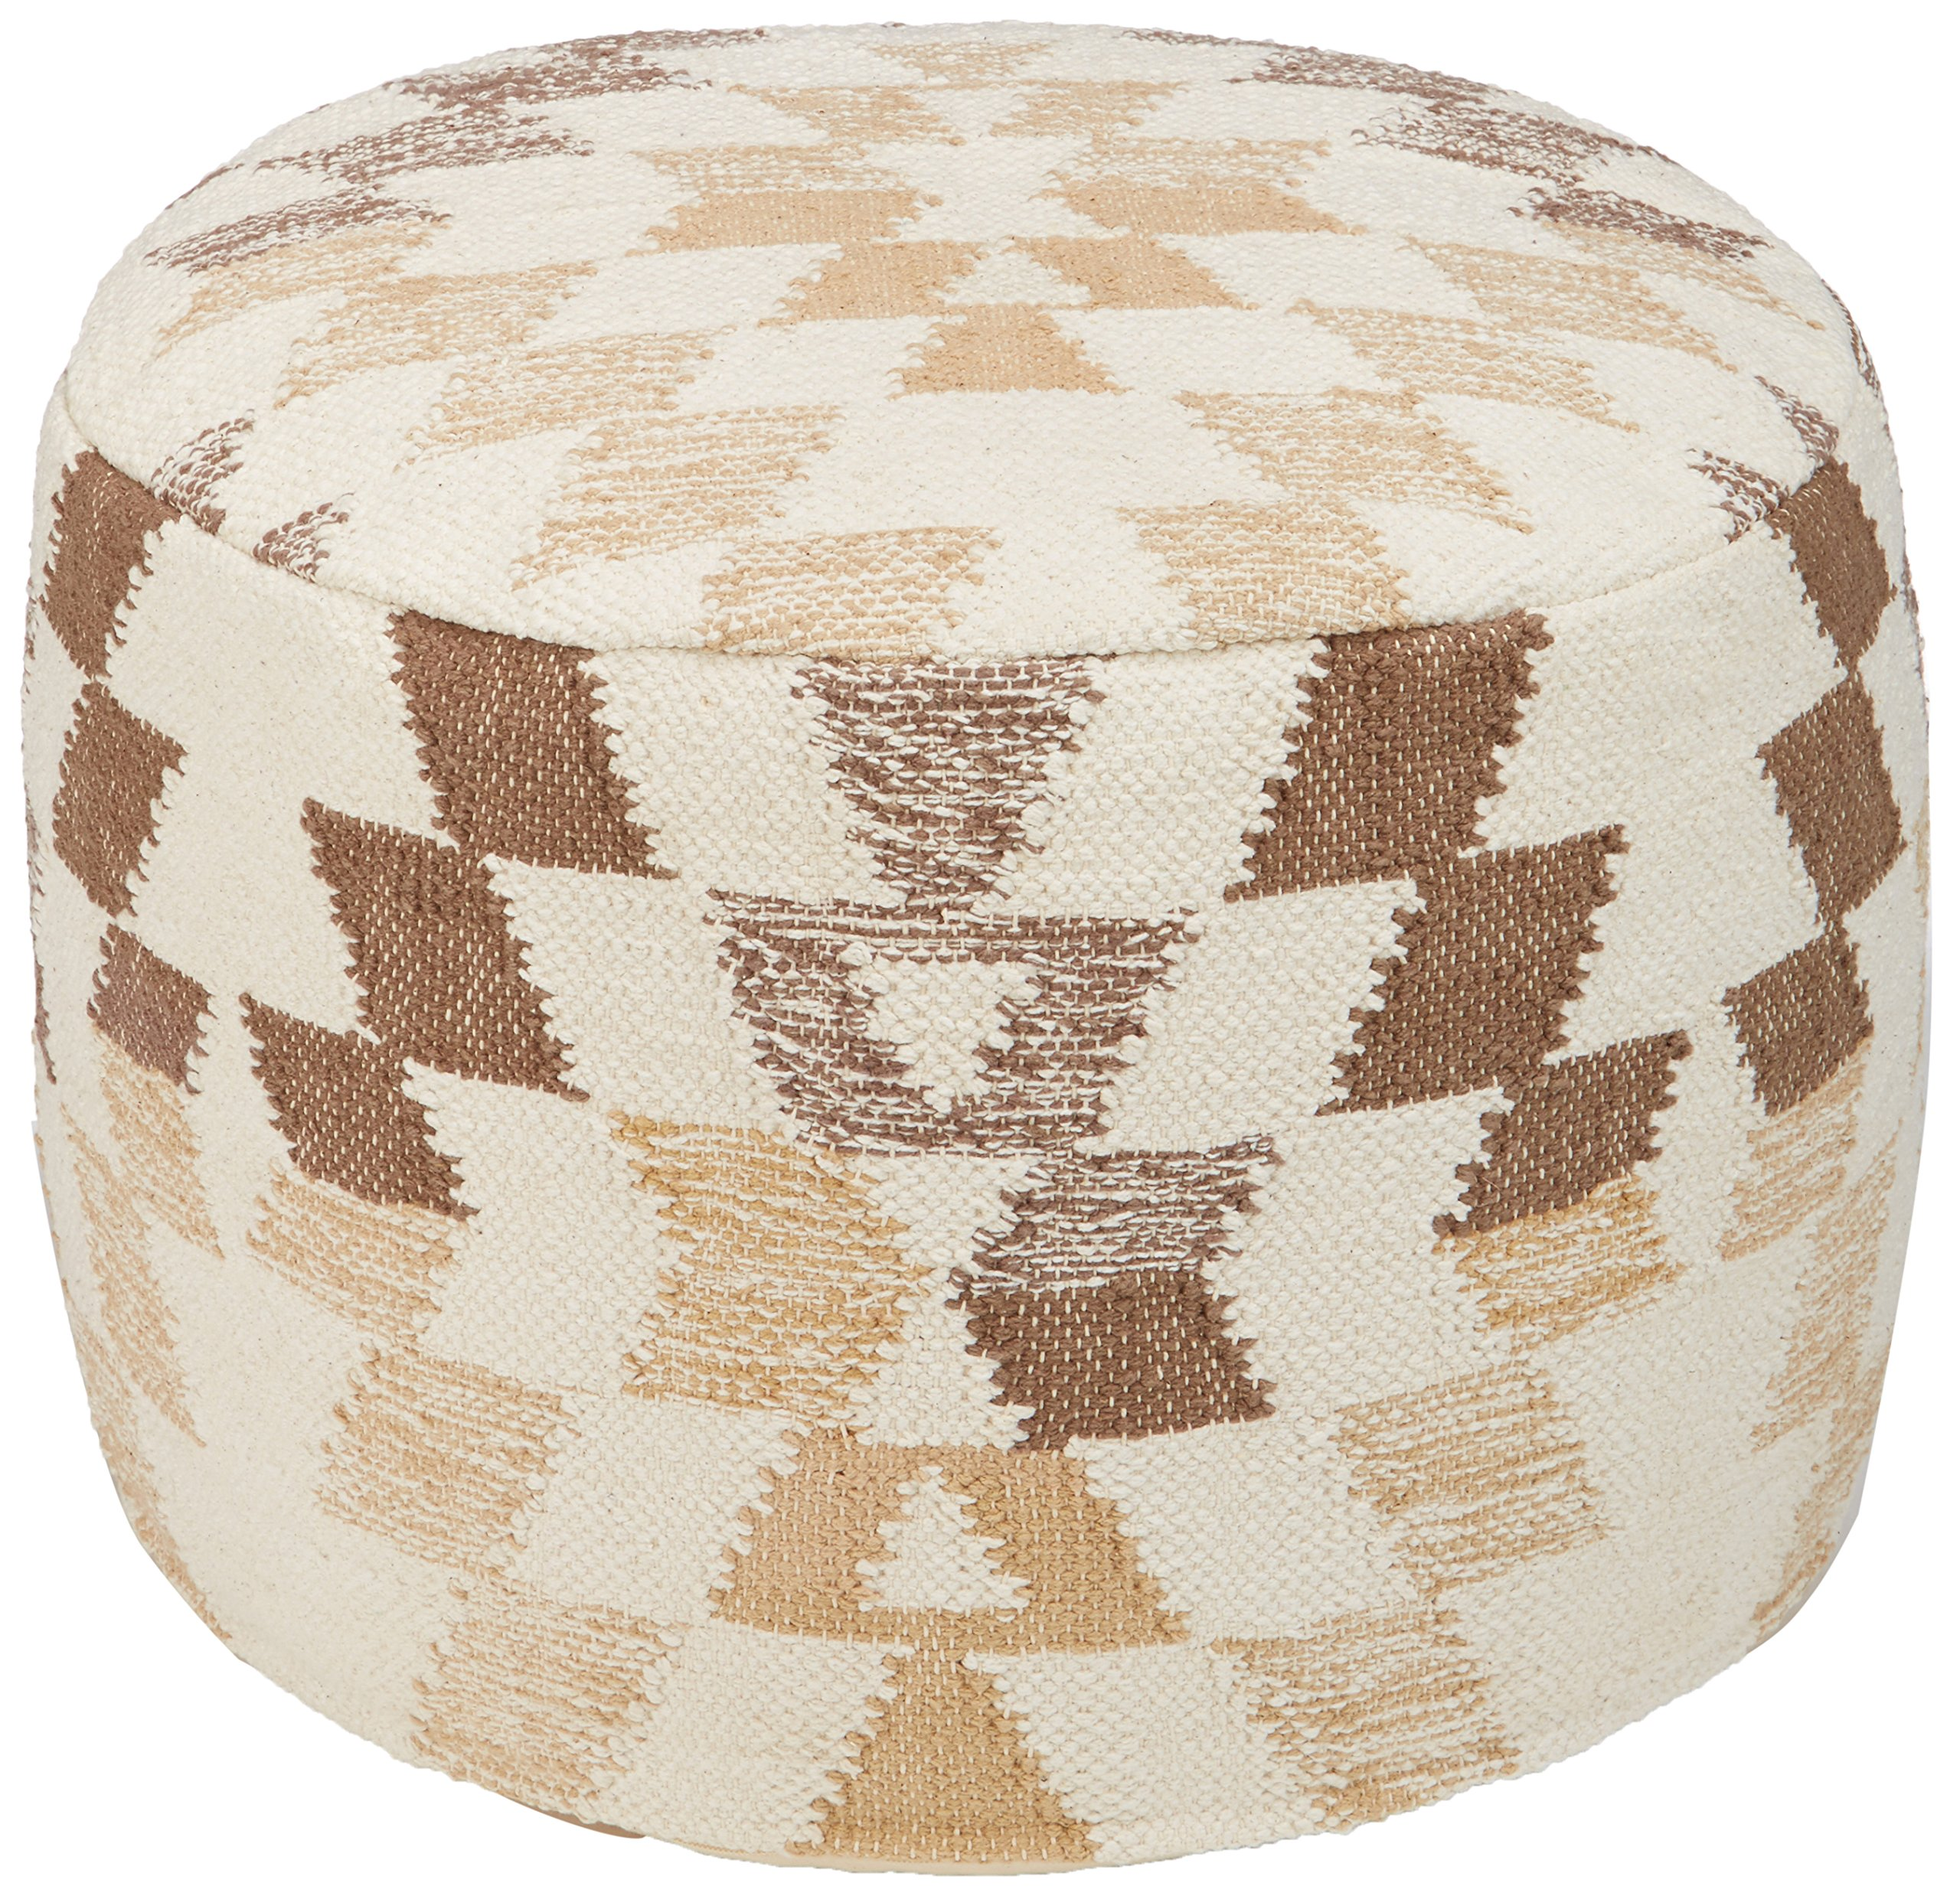 Ashley Furniture Signature Design - Abraham Pouf - Handmade - Imported - Traditional - White and Brown by Signature Design by Ashley (Image #1)